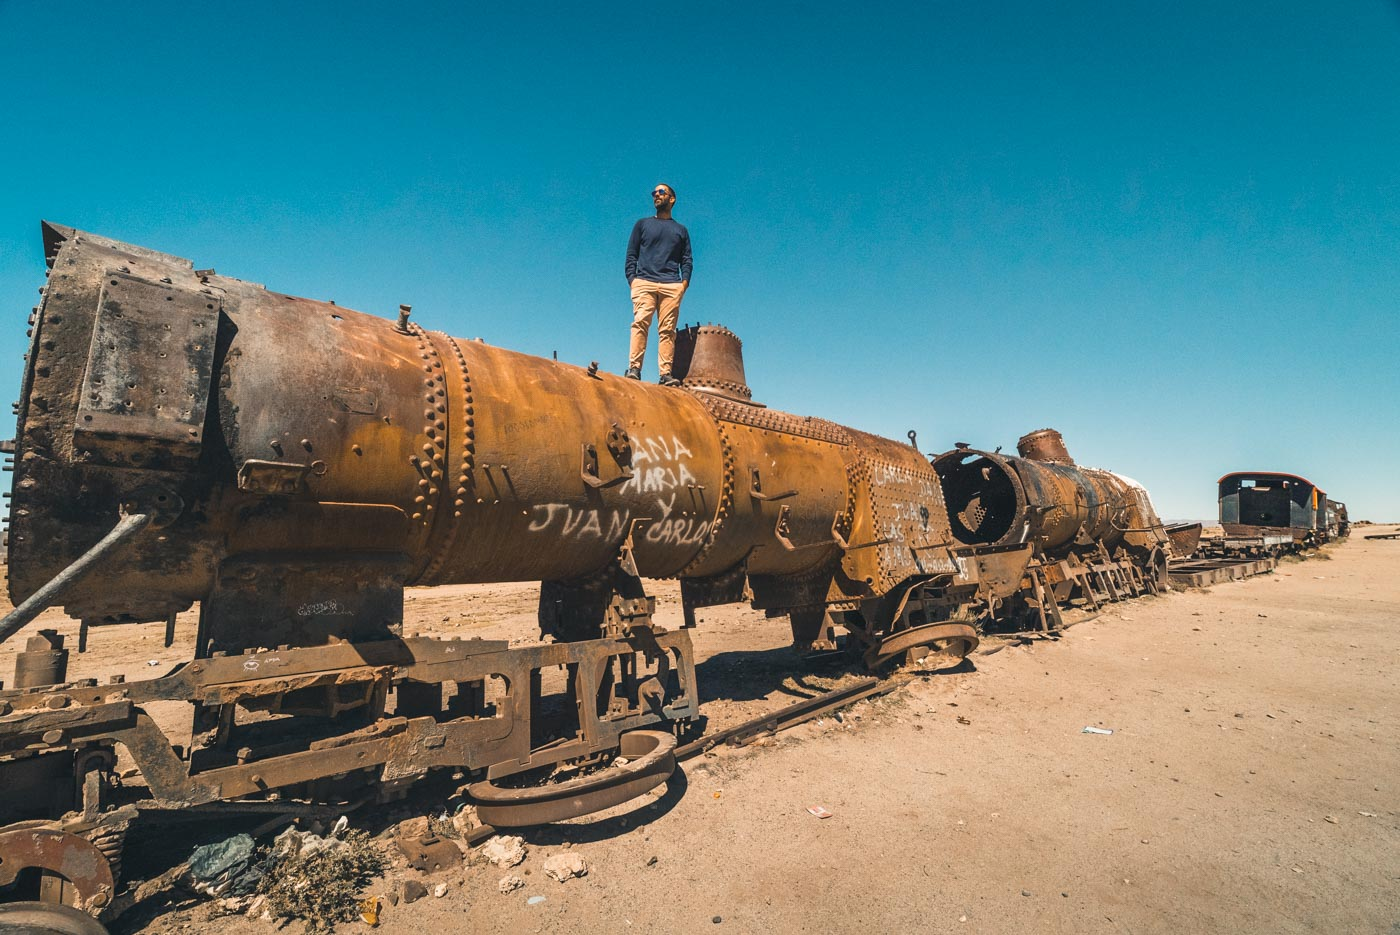 Max on top of a rusted train at the Train Graveyard outside of Uyuni